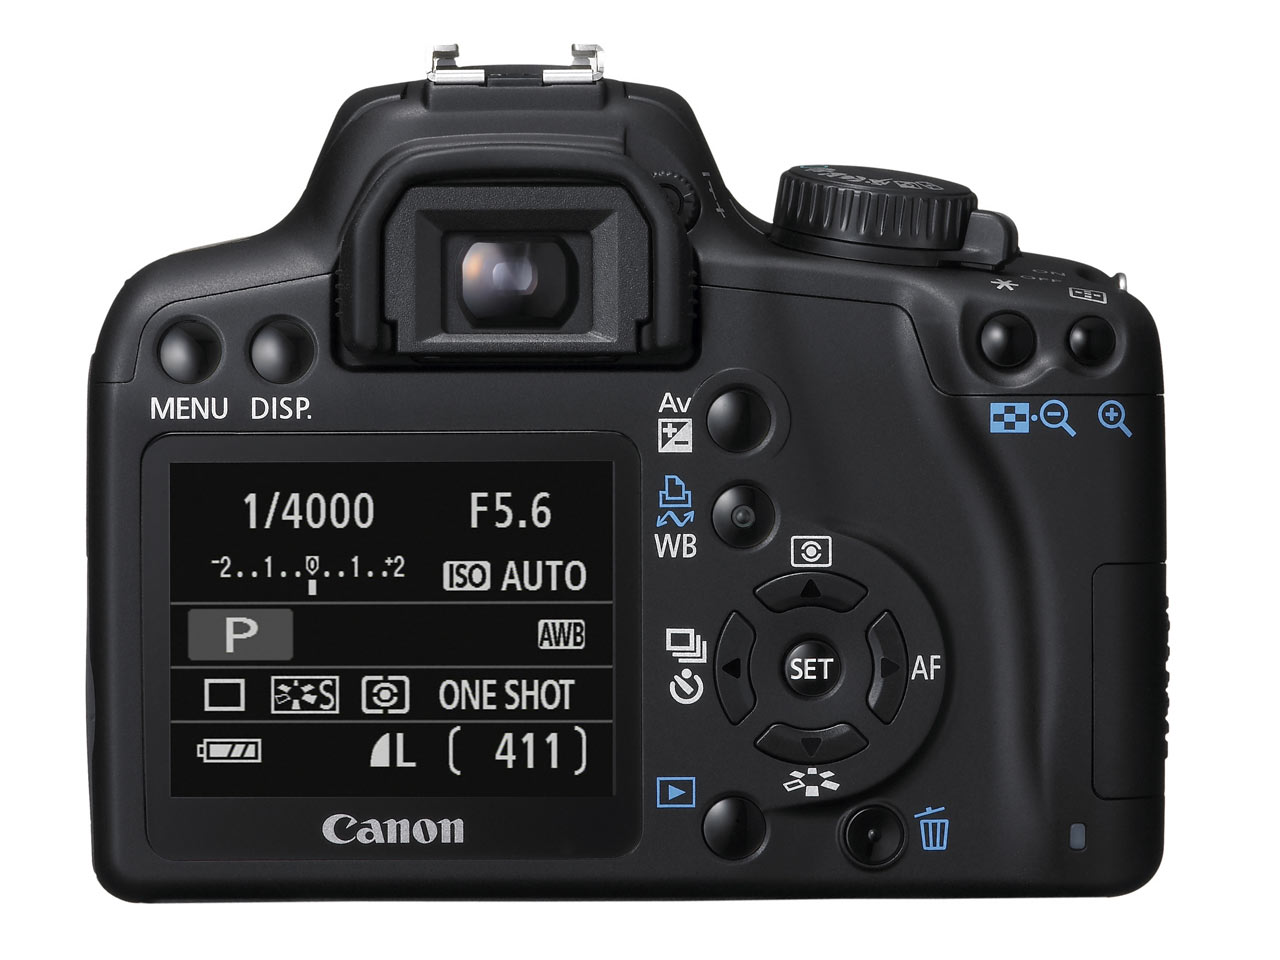 Canon Rebel XS Review - DigitalCameraReview